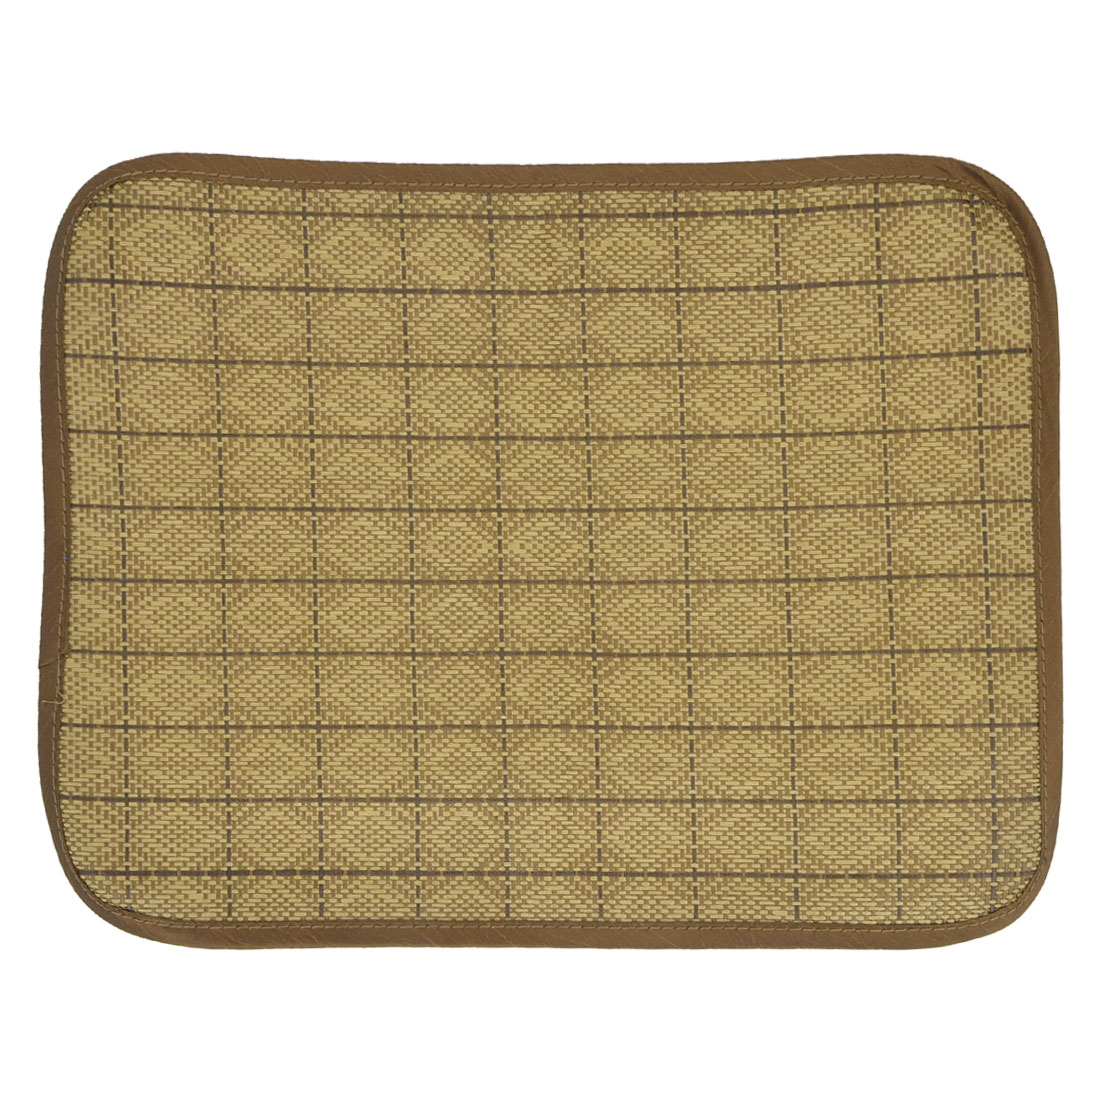 Brown Rattan Weaved Design Summer Pet Puppy Dog Cat Bed Mat 40cm x 30cm